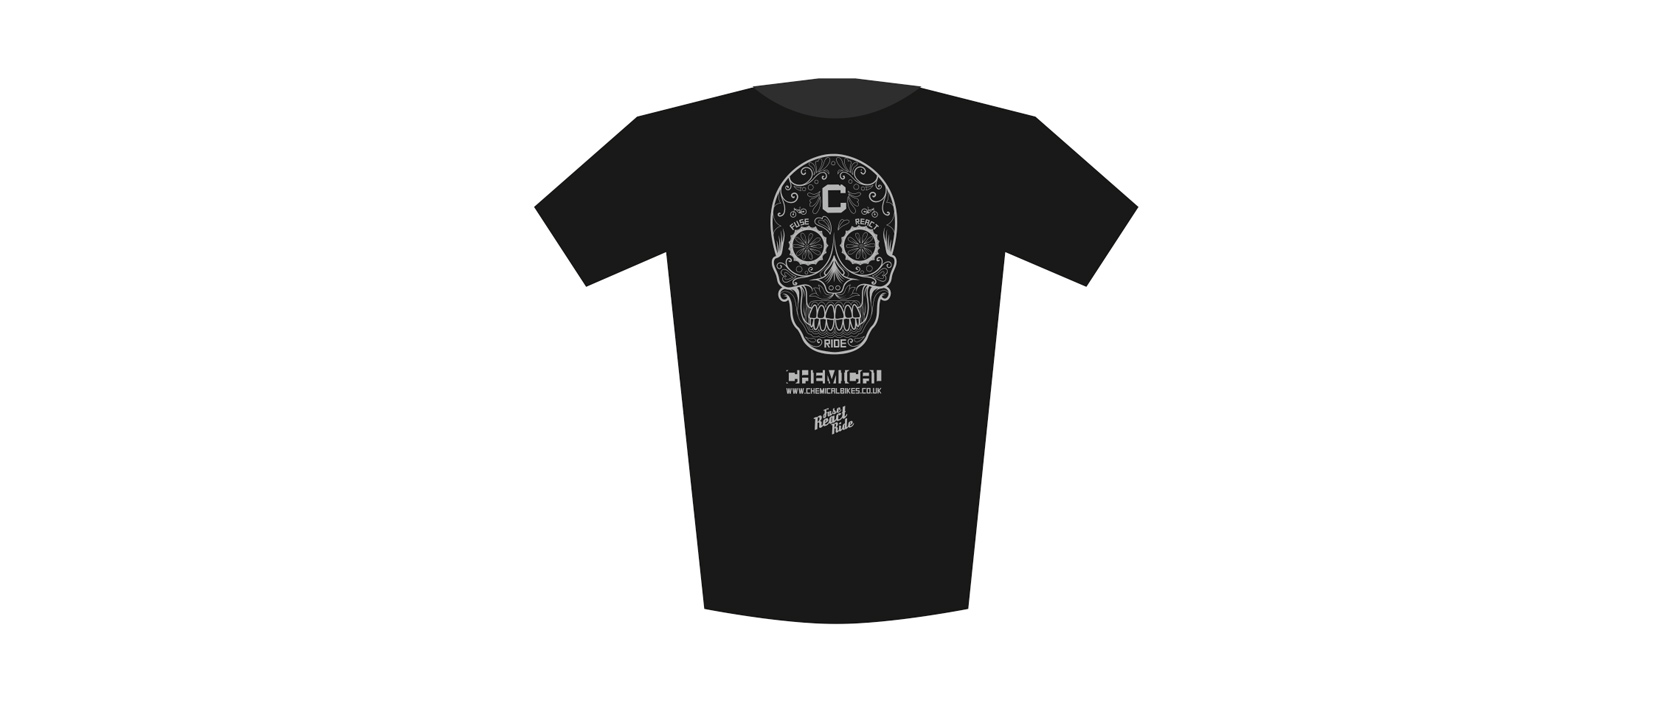 http://chemicalbikes.co.uk/wp-content/uploads/2017/11/Website-images-skull-2.jpg